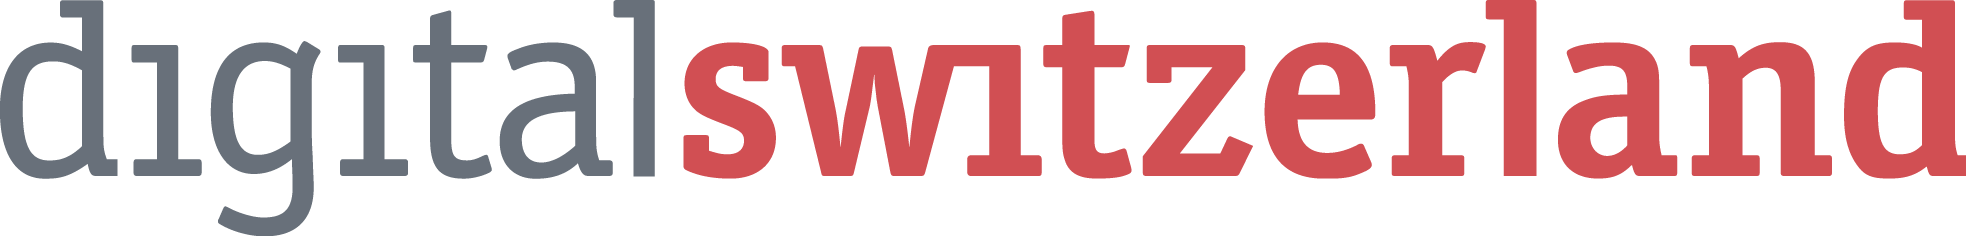 logo_digital_switzerland_cmyk.png